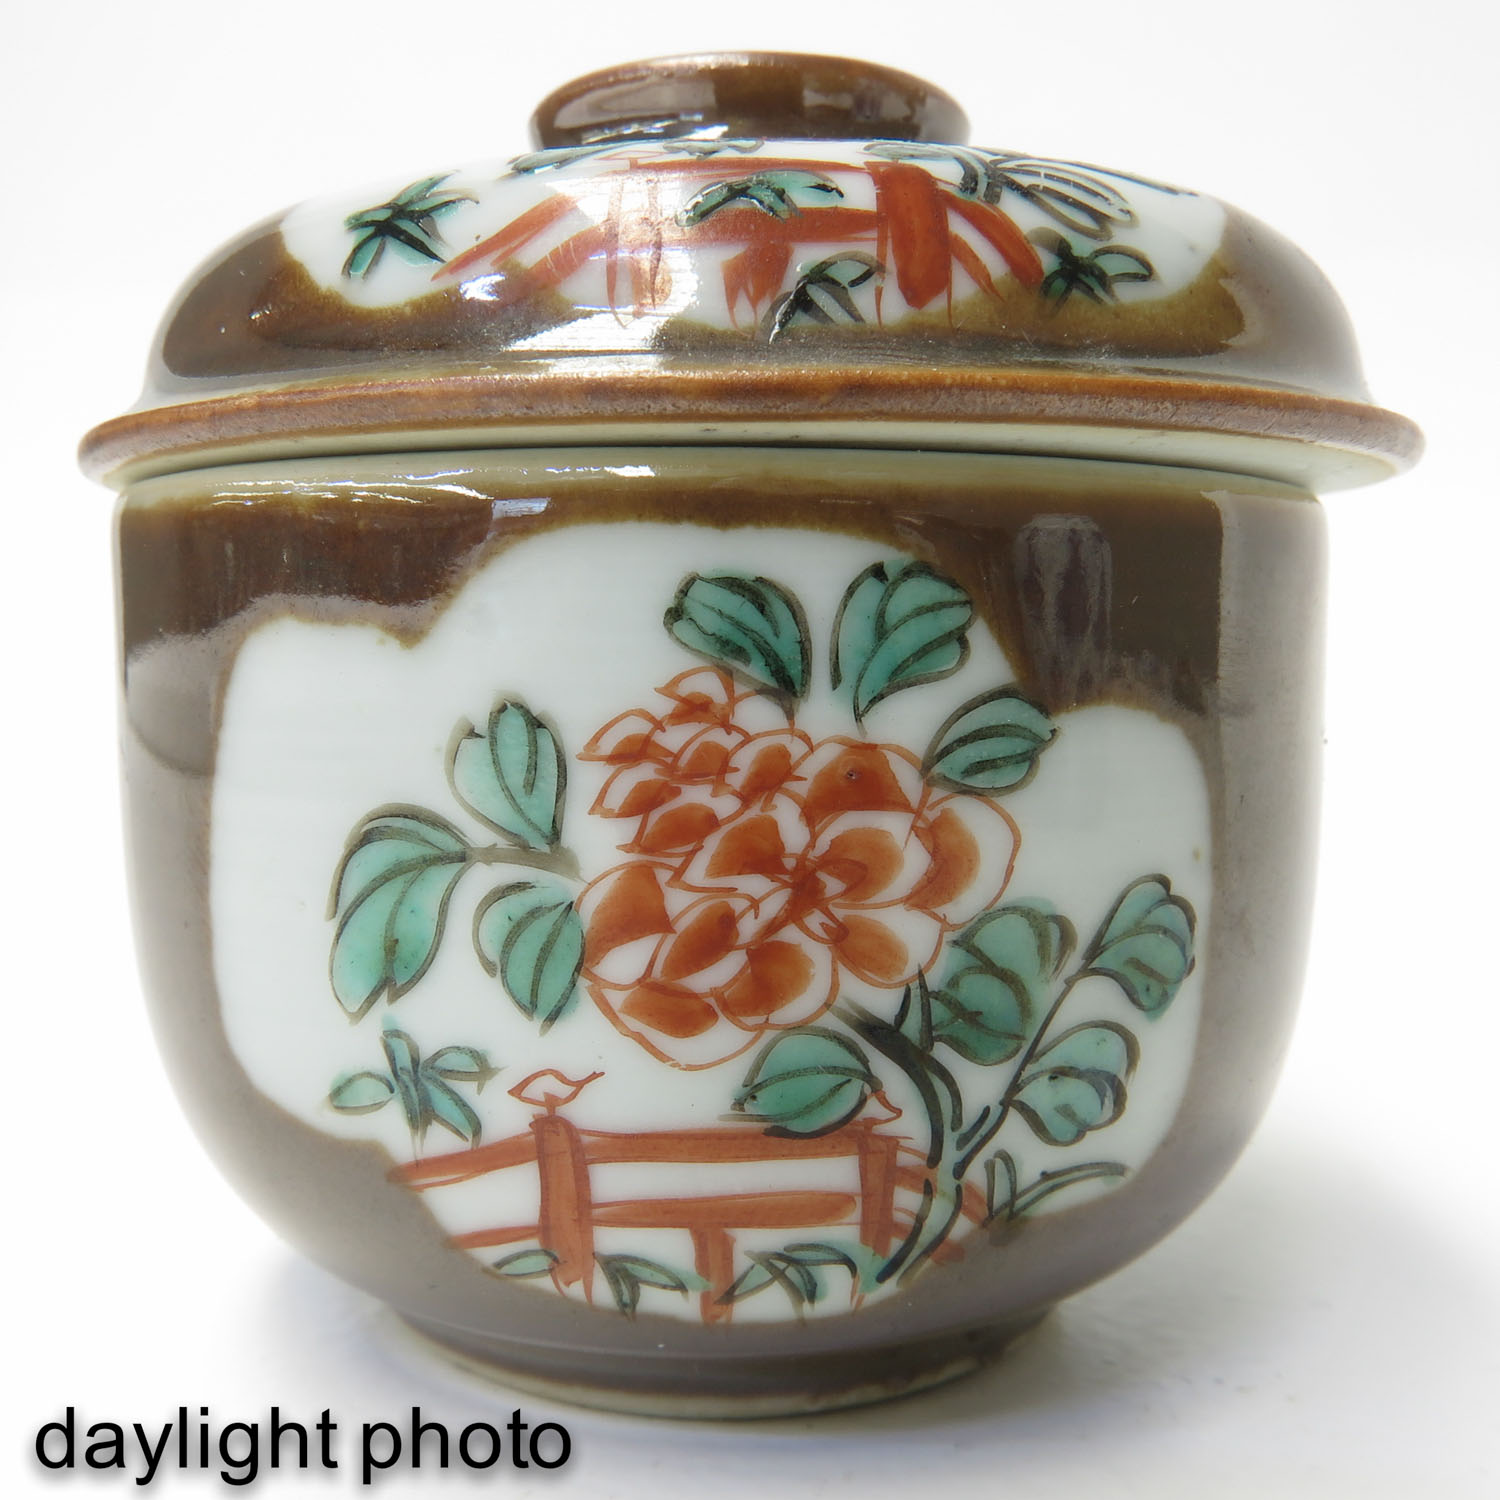 A Collection of Jars with Covers - Image 10 of 10